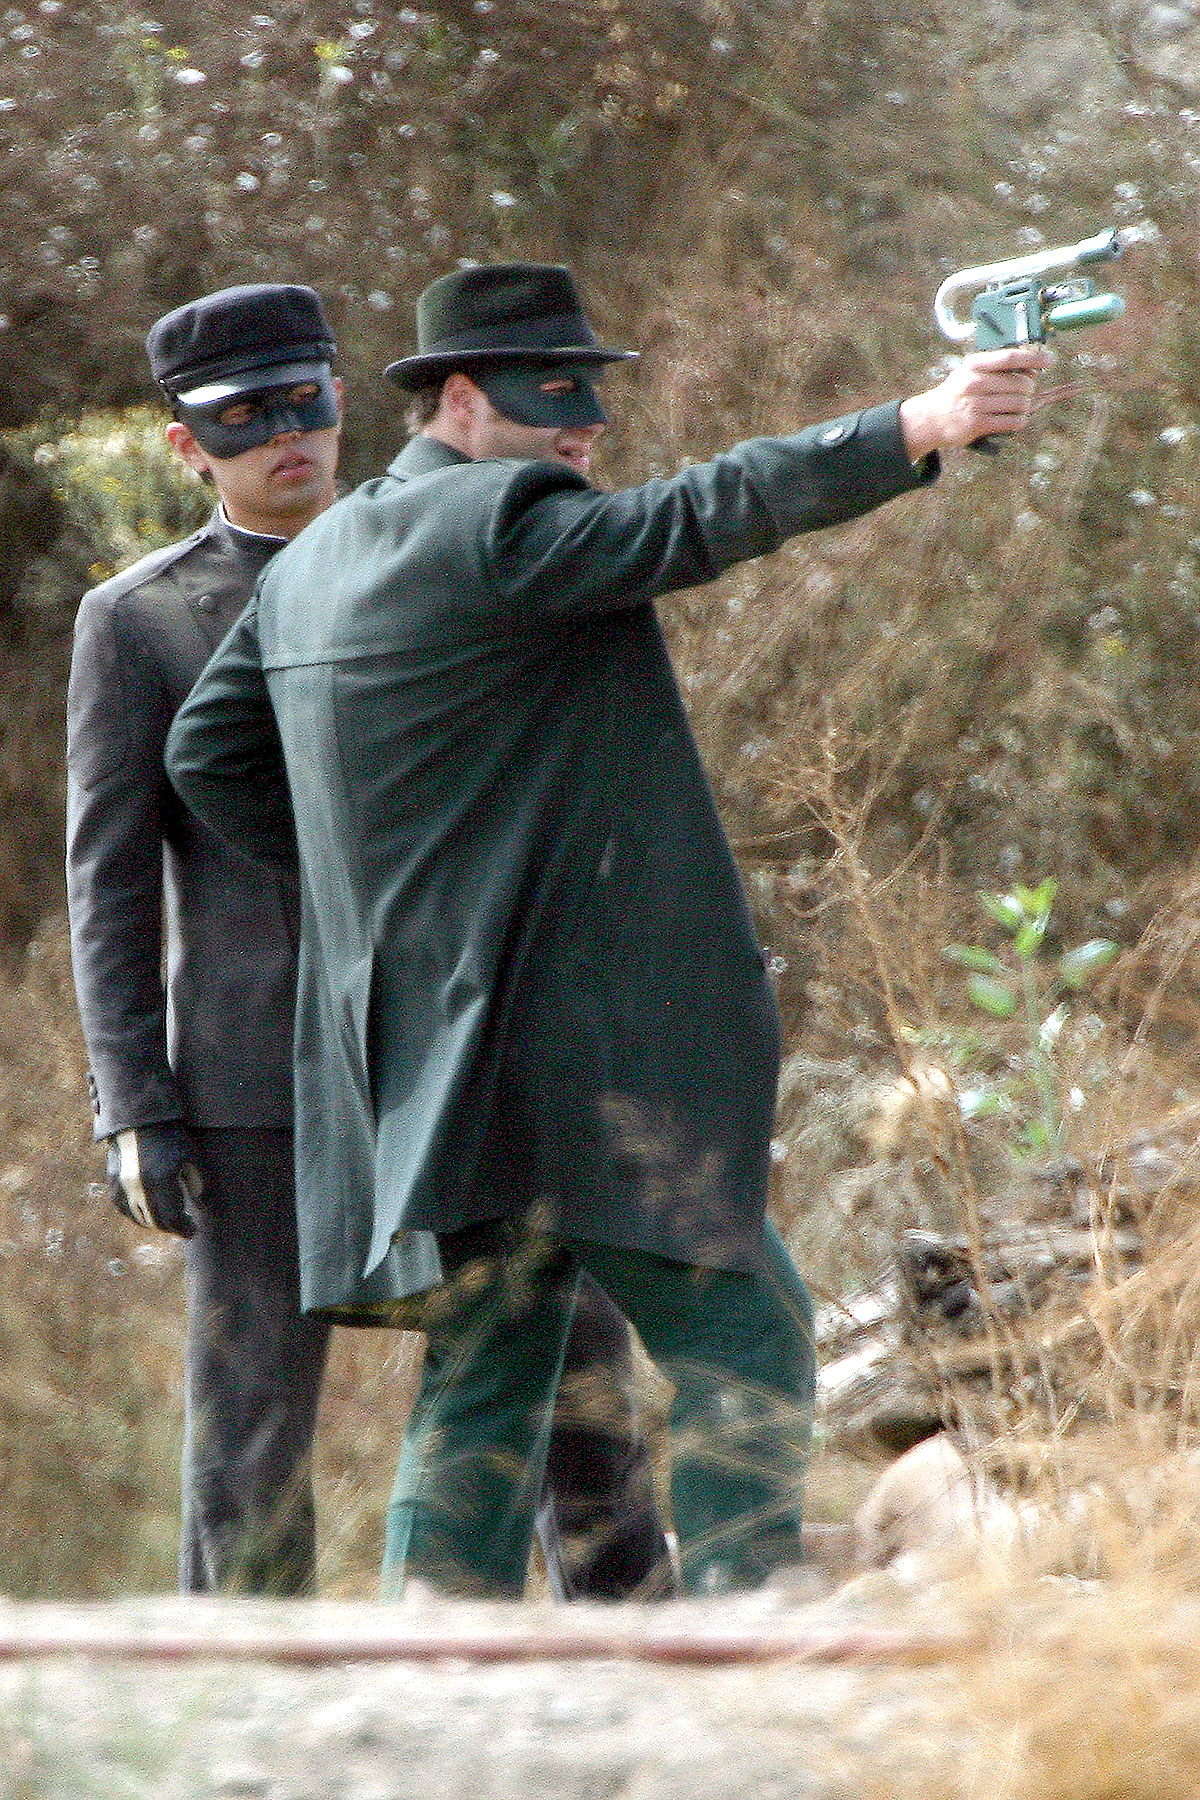 PHOTO GALLERY: Seth Rogen as The Green Hornet